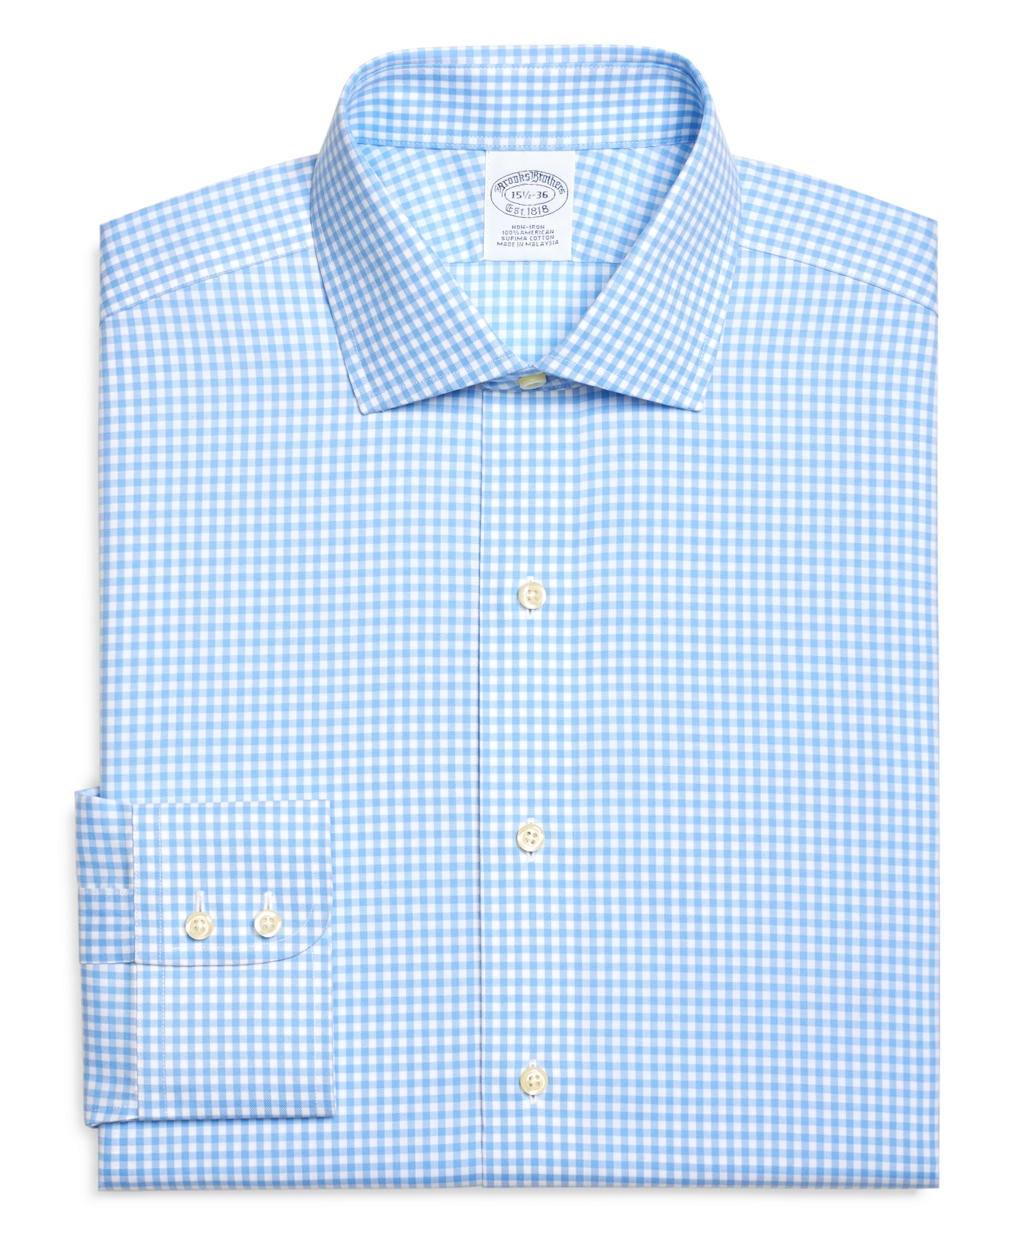 Lyst brooks brothers non iron slim fit gingham check for Blue check dress shirt